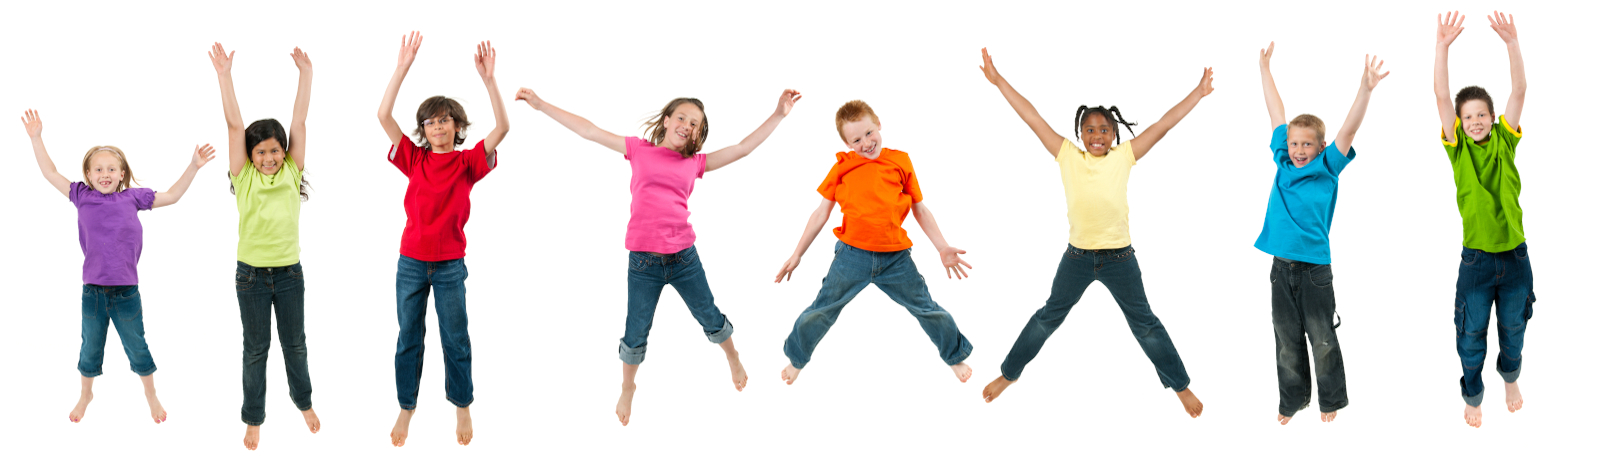 Group of children jumping up